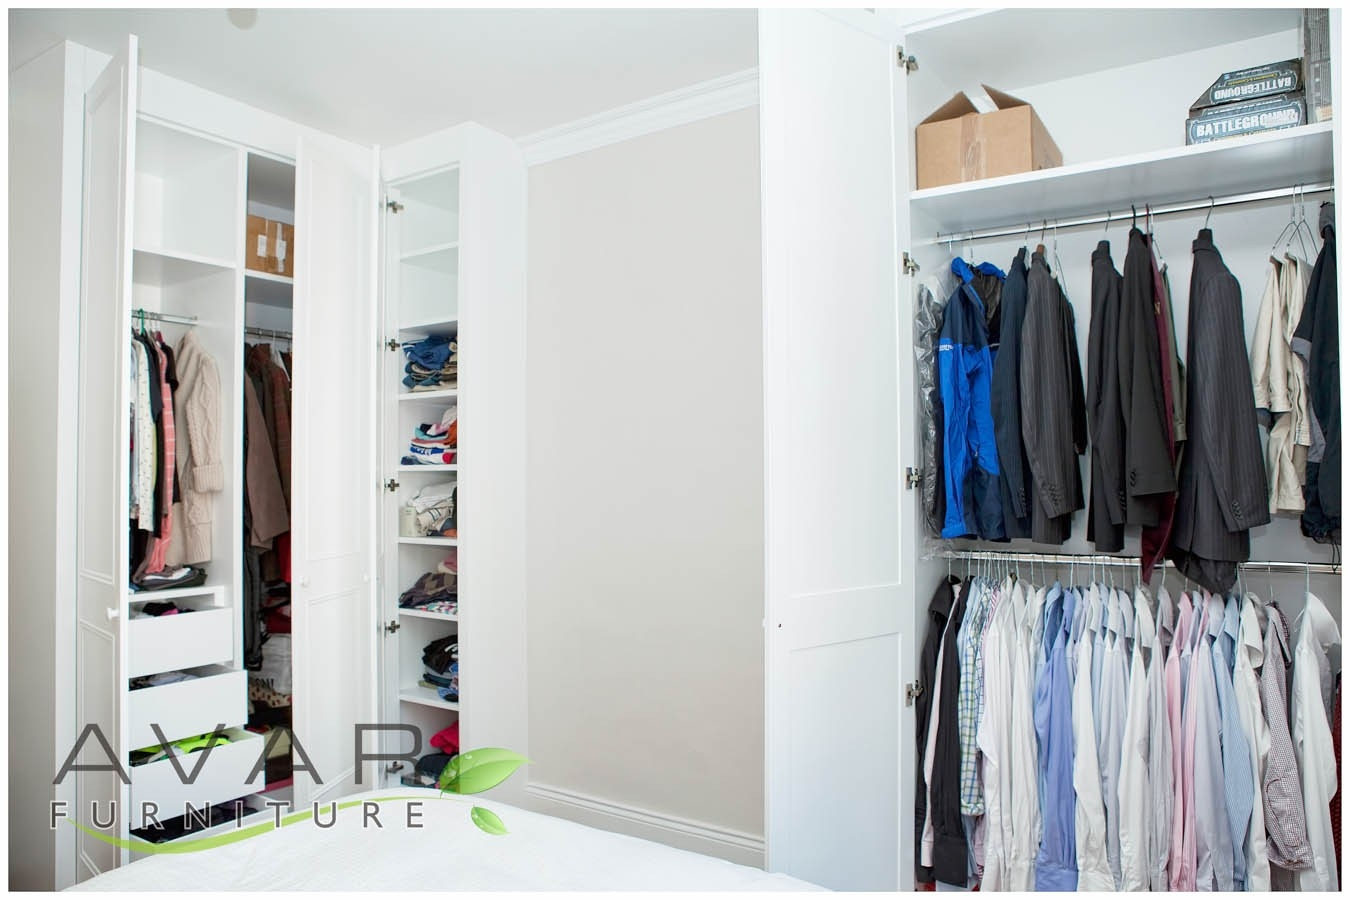 Fitted Wardrobe Ideas Gallery 15 North London Uk Avar With Regard To Alcove Wardrobes Designs (View 11 of 15)